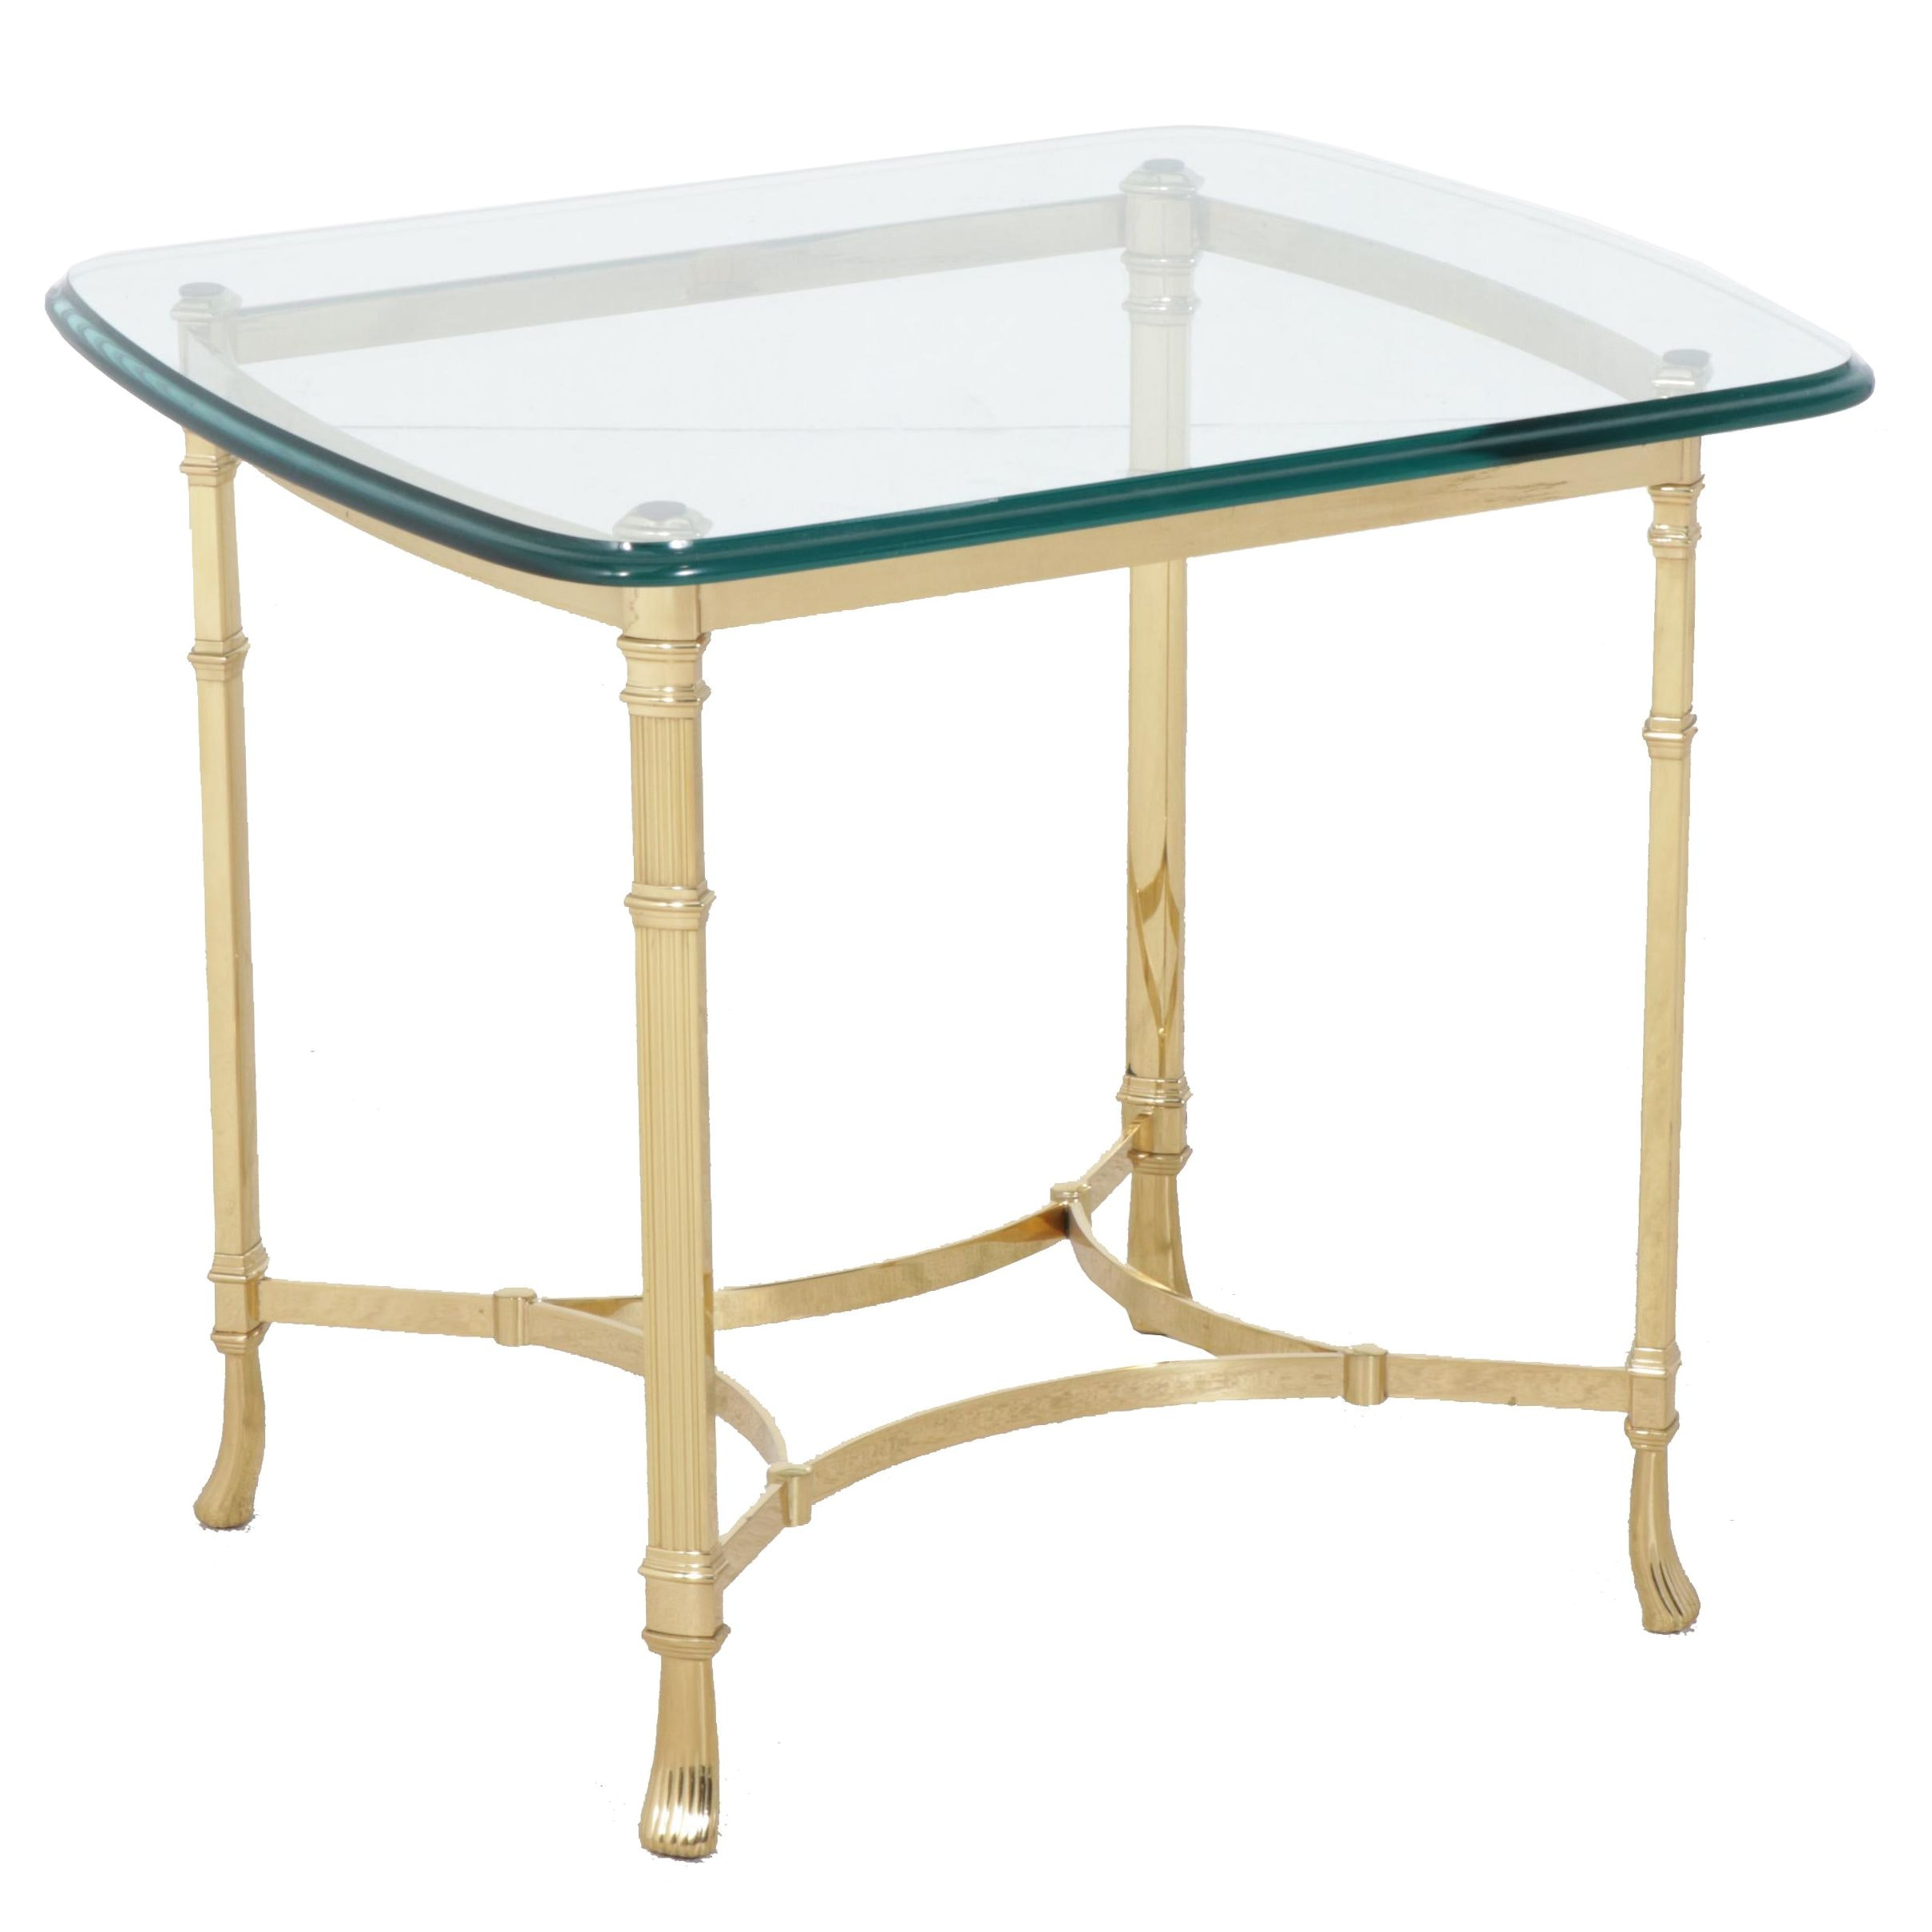 Contemporary Harden Glass Top Brass Frame Side Table